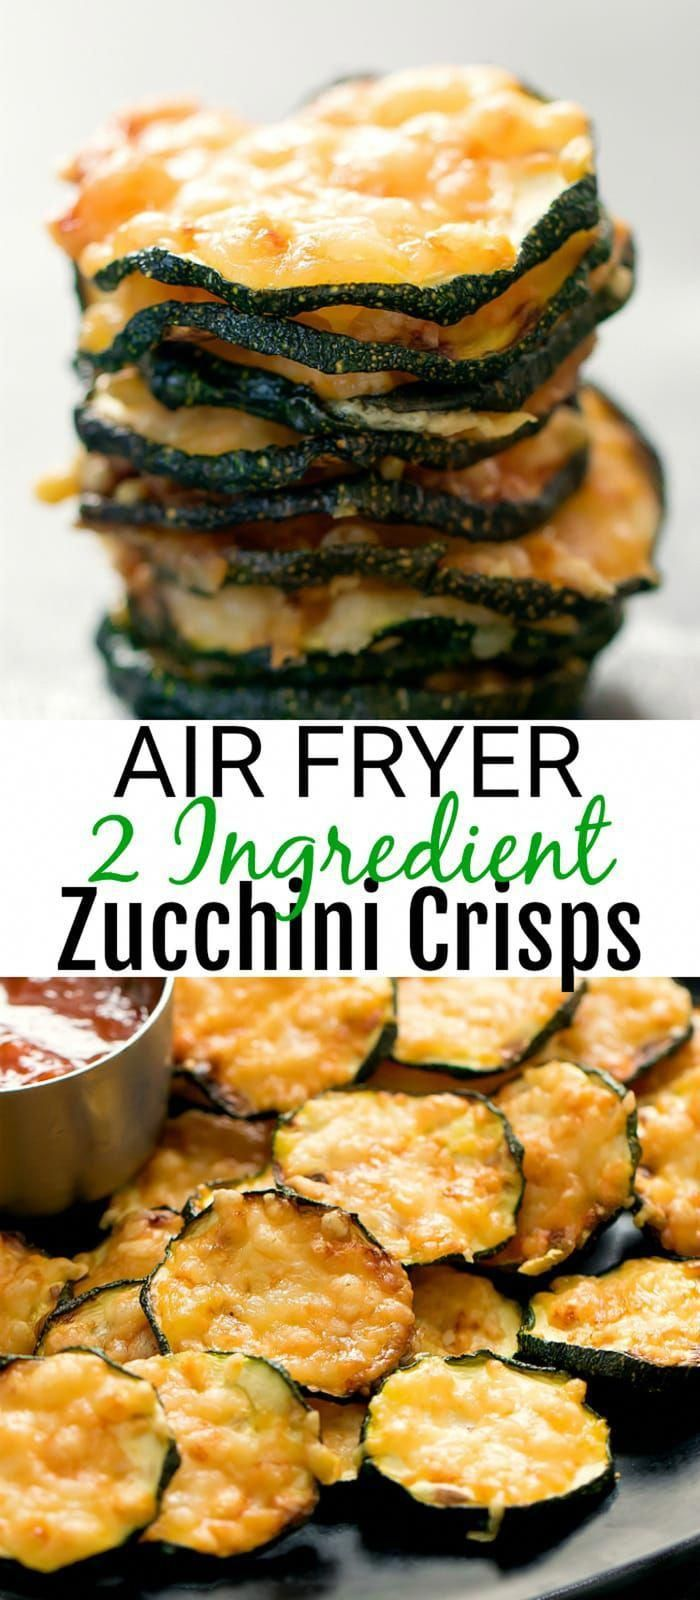 Air Fryer 2 Ingredient Parmesan Zucchini Crisps -   19 air fryer recipes easy ideas